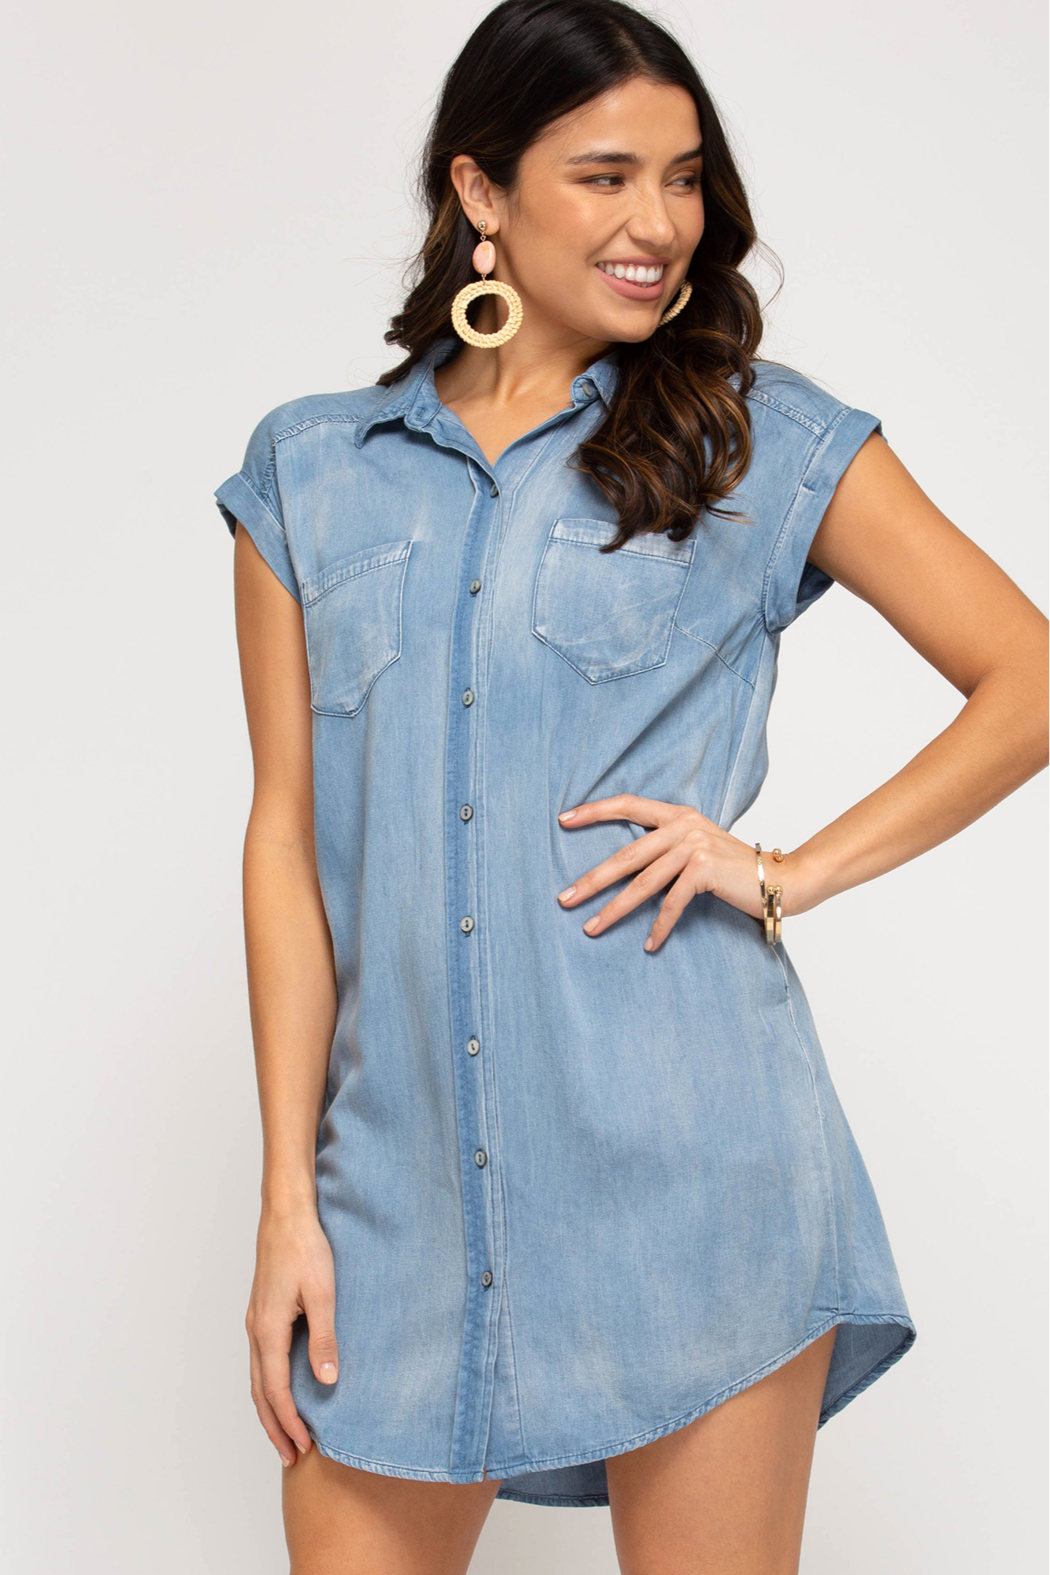 She and Sky SHIRT DRESS WITH POCKETS - Front Cropped Image